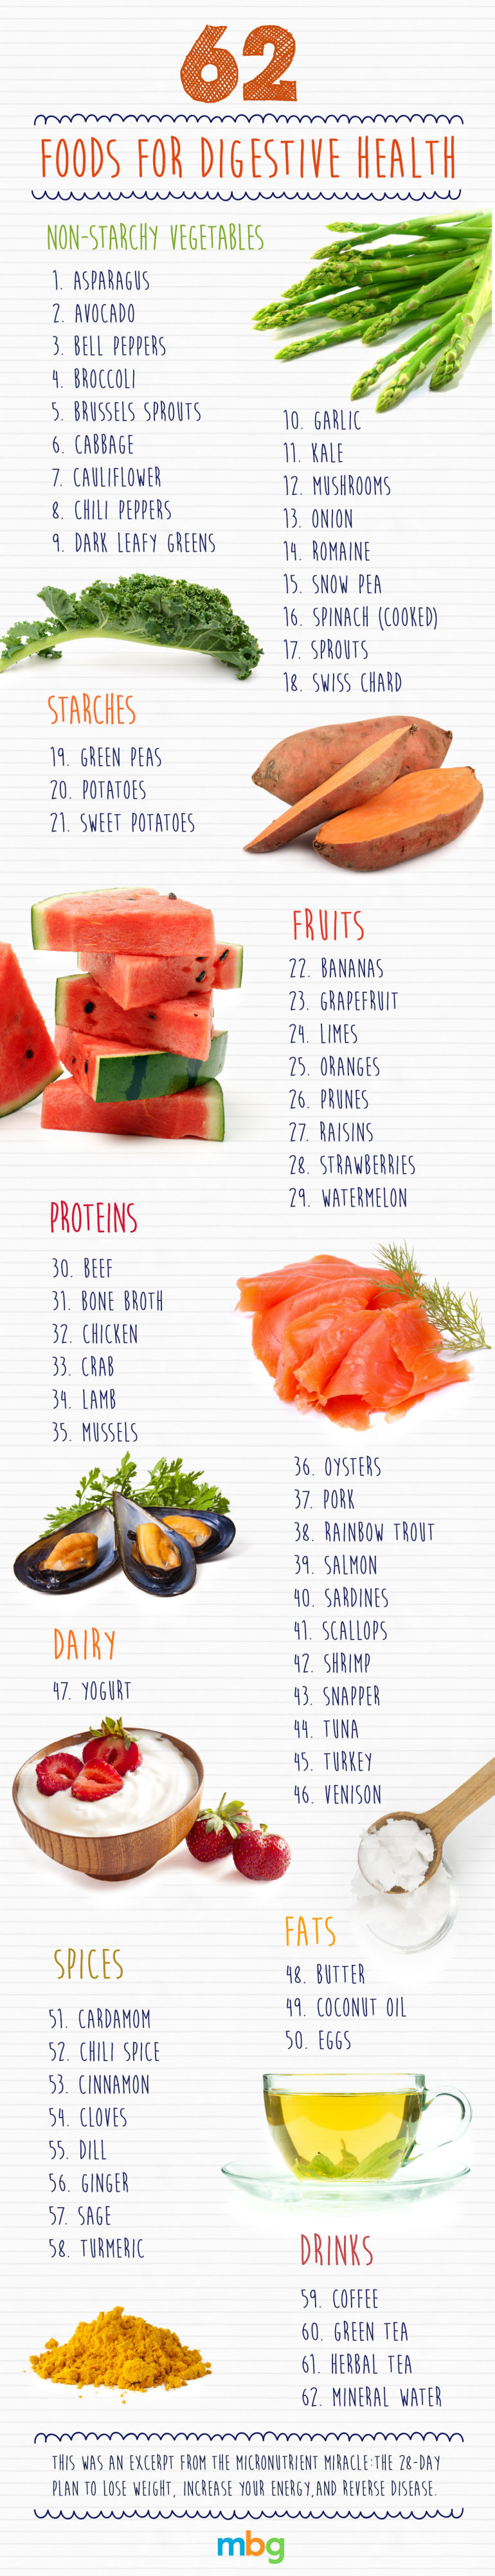 Foods for Digestion